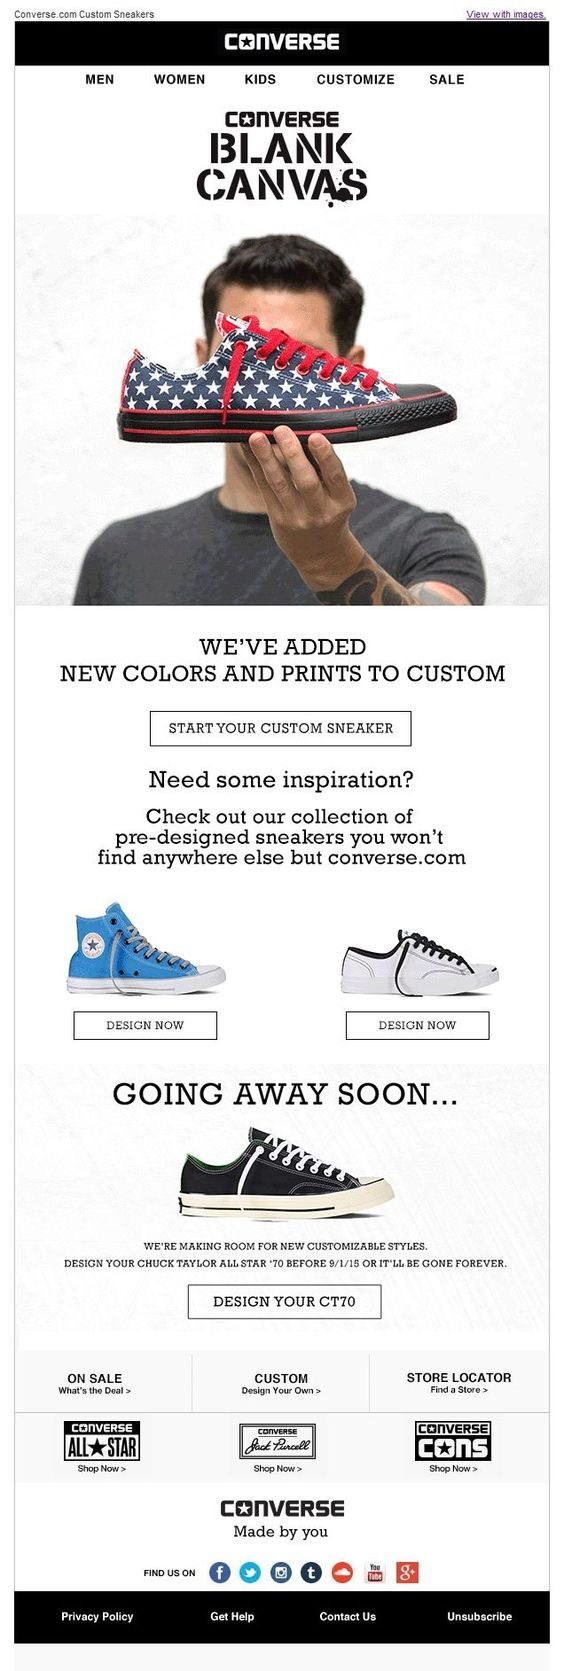 1dcf67f24dd6 Here is an email from Converse about there custom design program. They let  you know that they have added some new colors and prints to their gallery  that ...